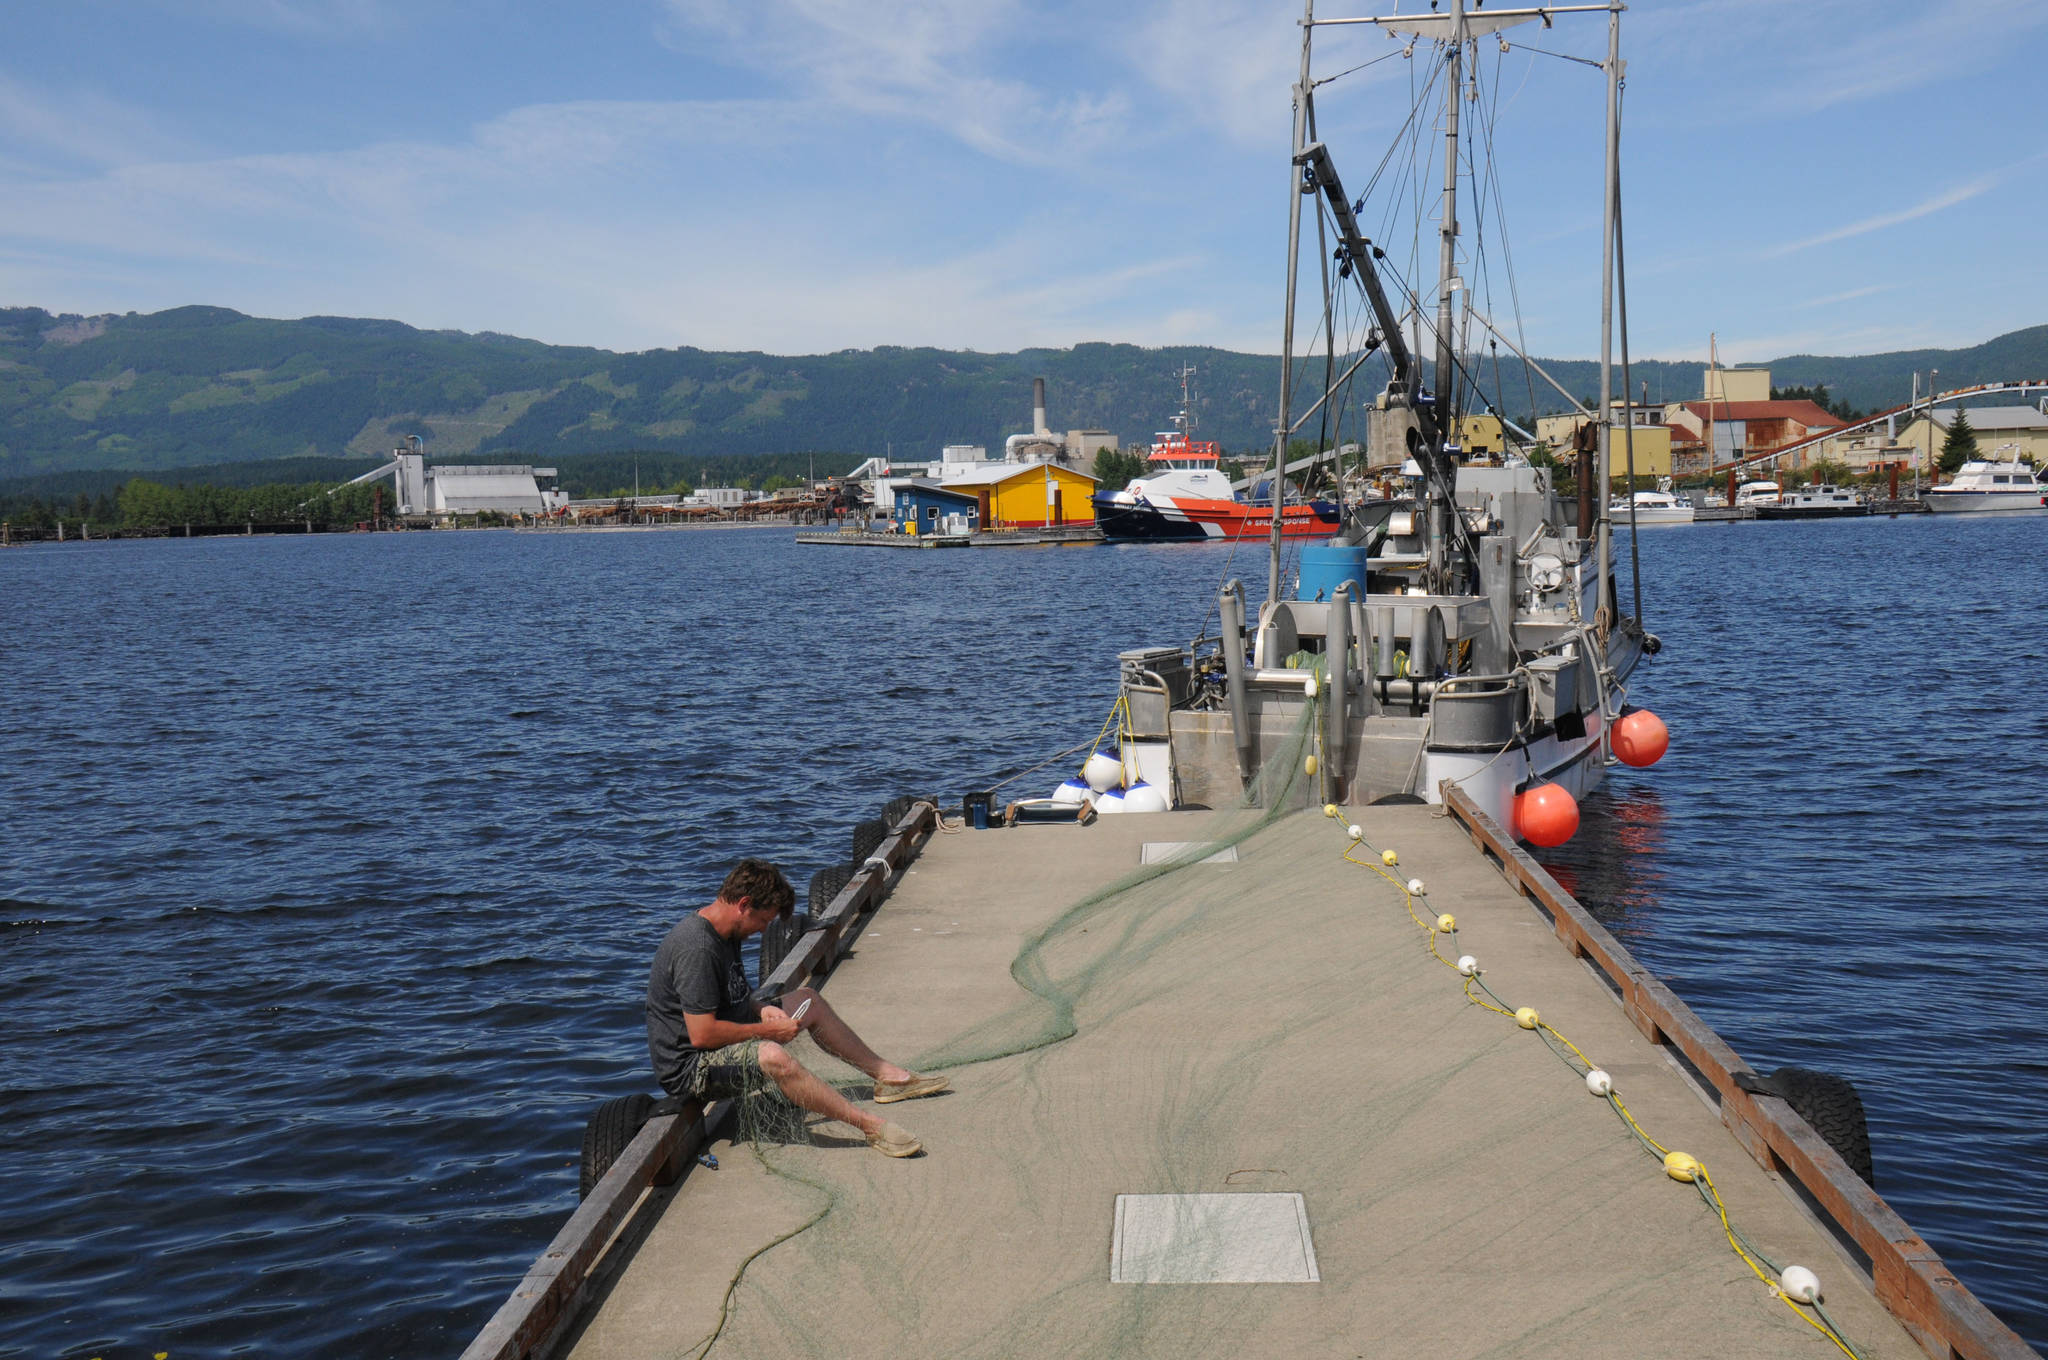 Commercial gillnet fisher Ryan Daynes repairs his net from the Lily M. on one of the wharf fingers at Centennial Pier, Port Alberni, on June 24, 2021. (SUSAN QUINN/ Alberni Valley News)